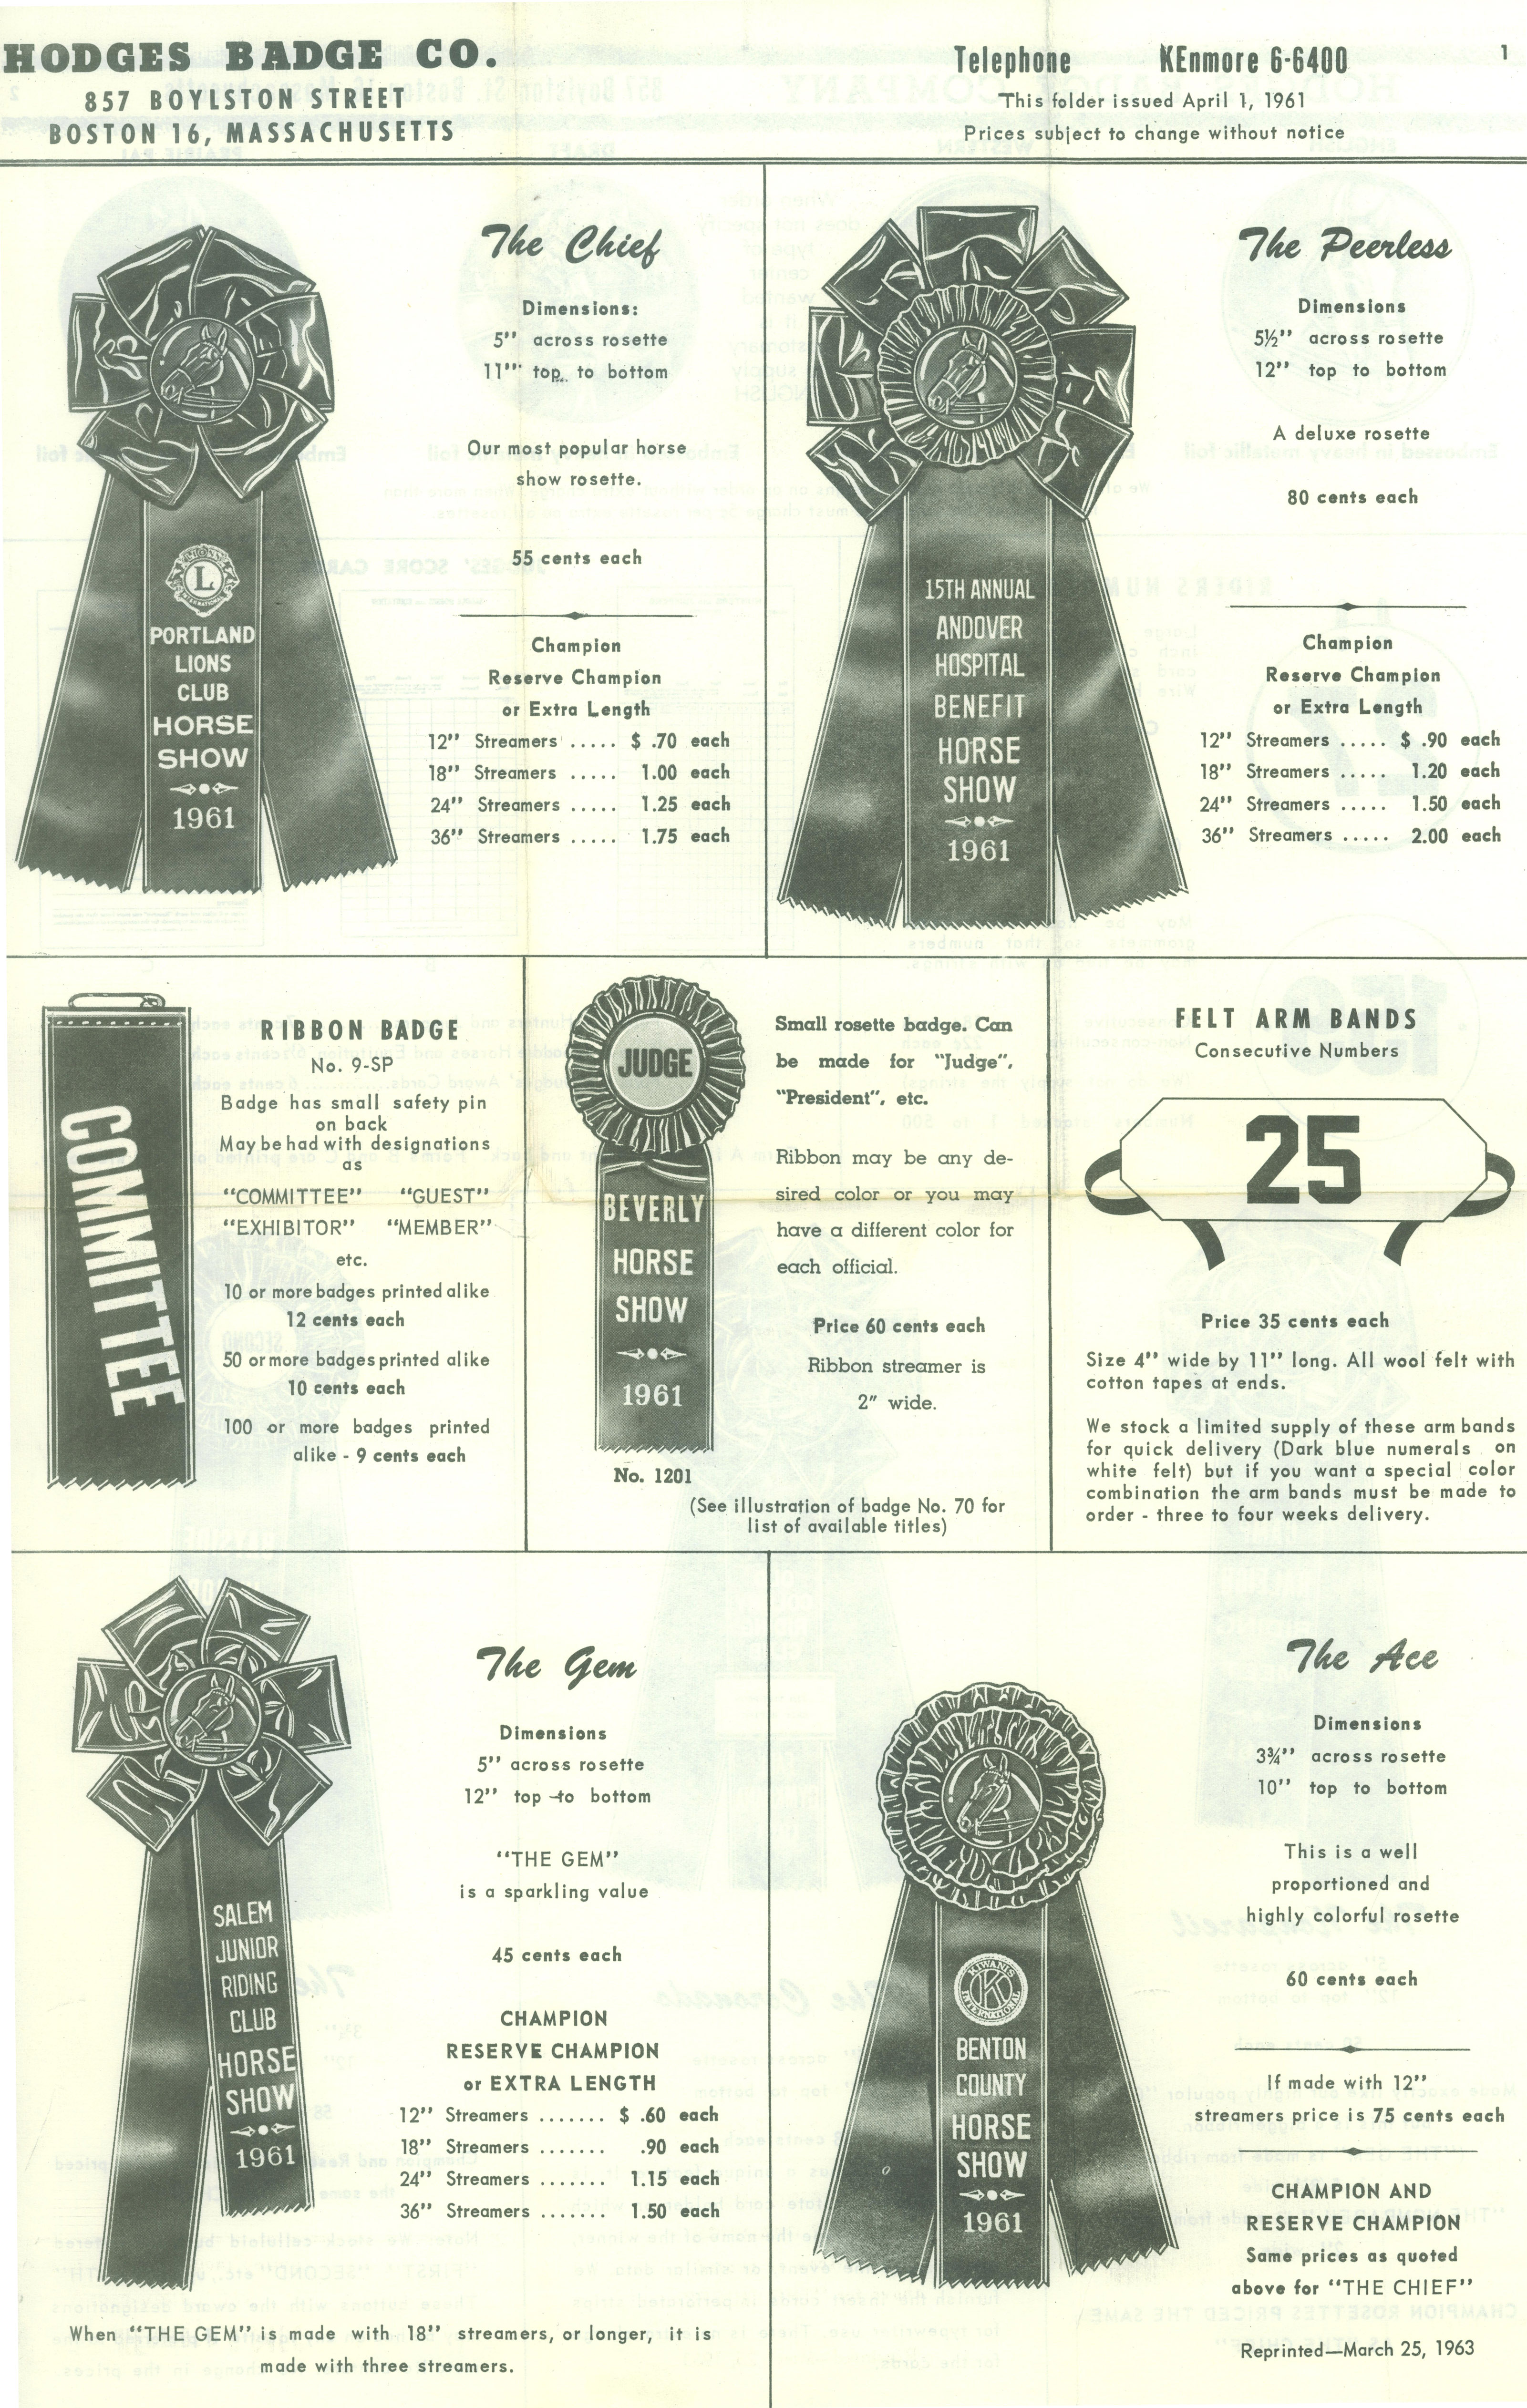 horse show ribbons | Hodges Badge Company's Blog